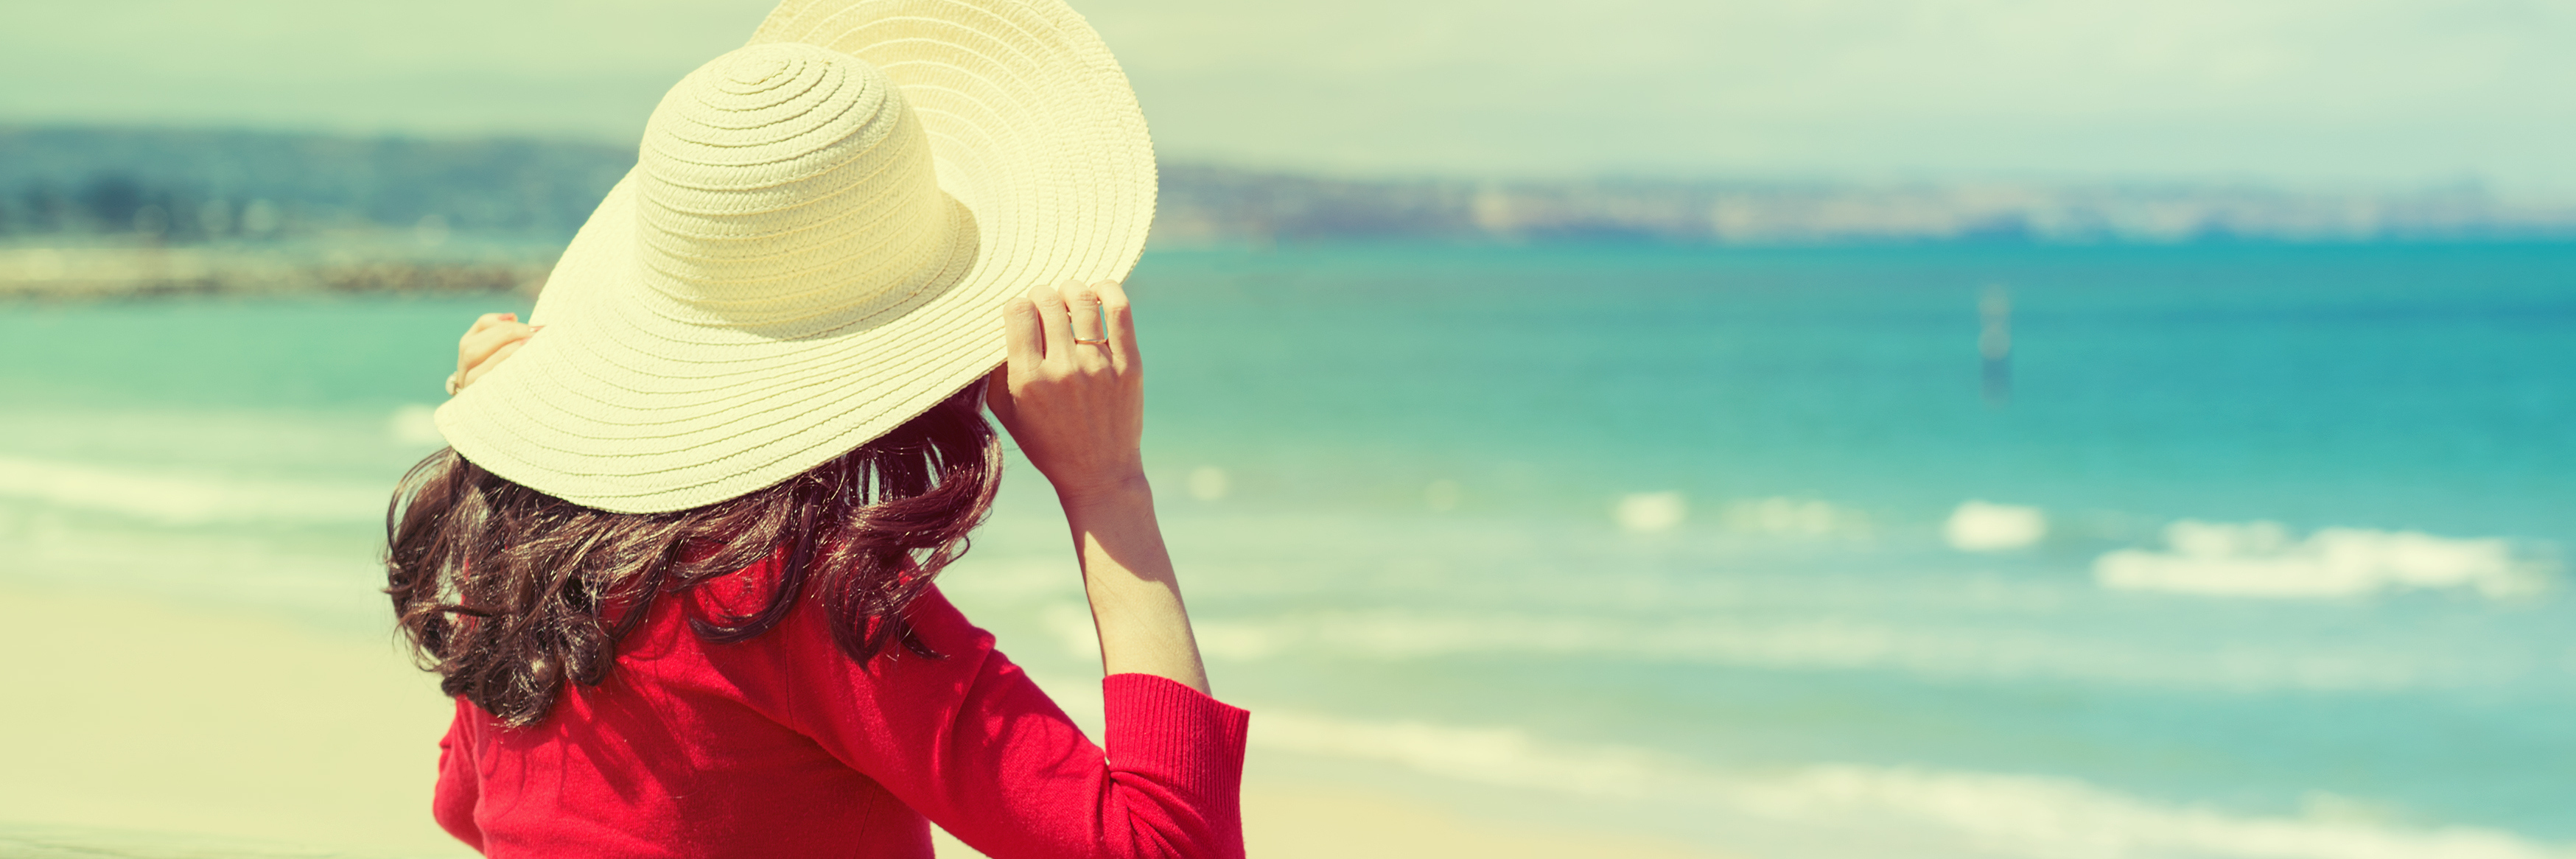 woman wearing hat looking at ocean